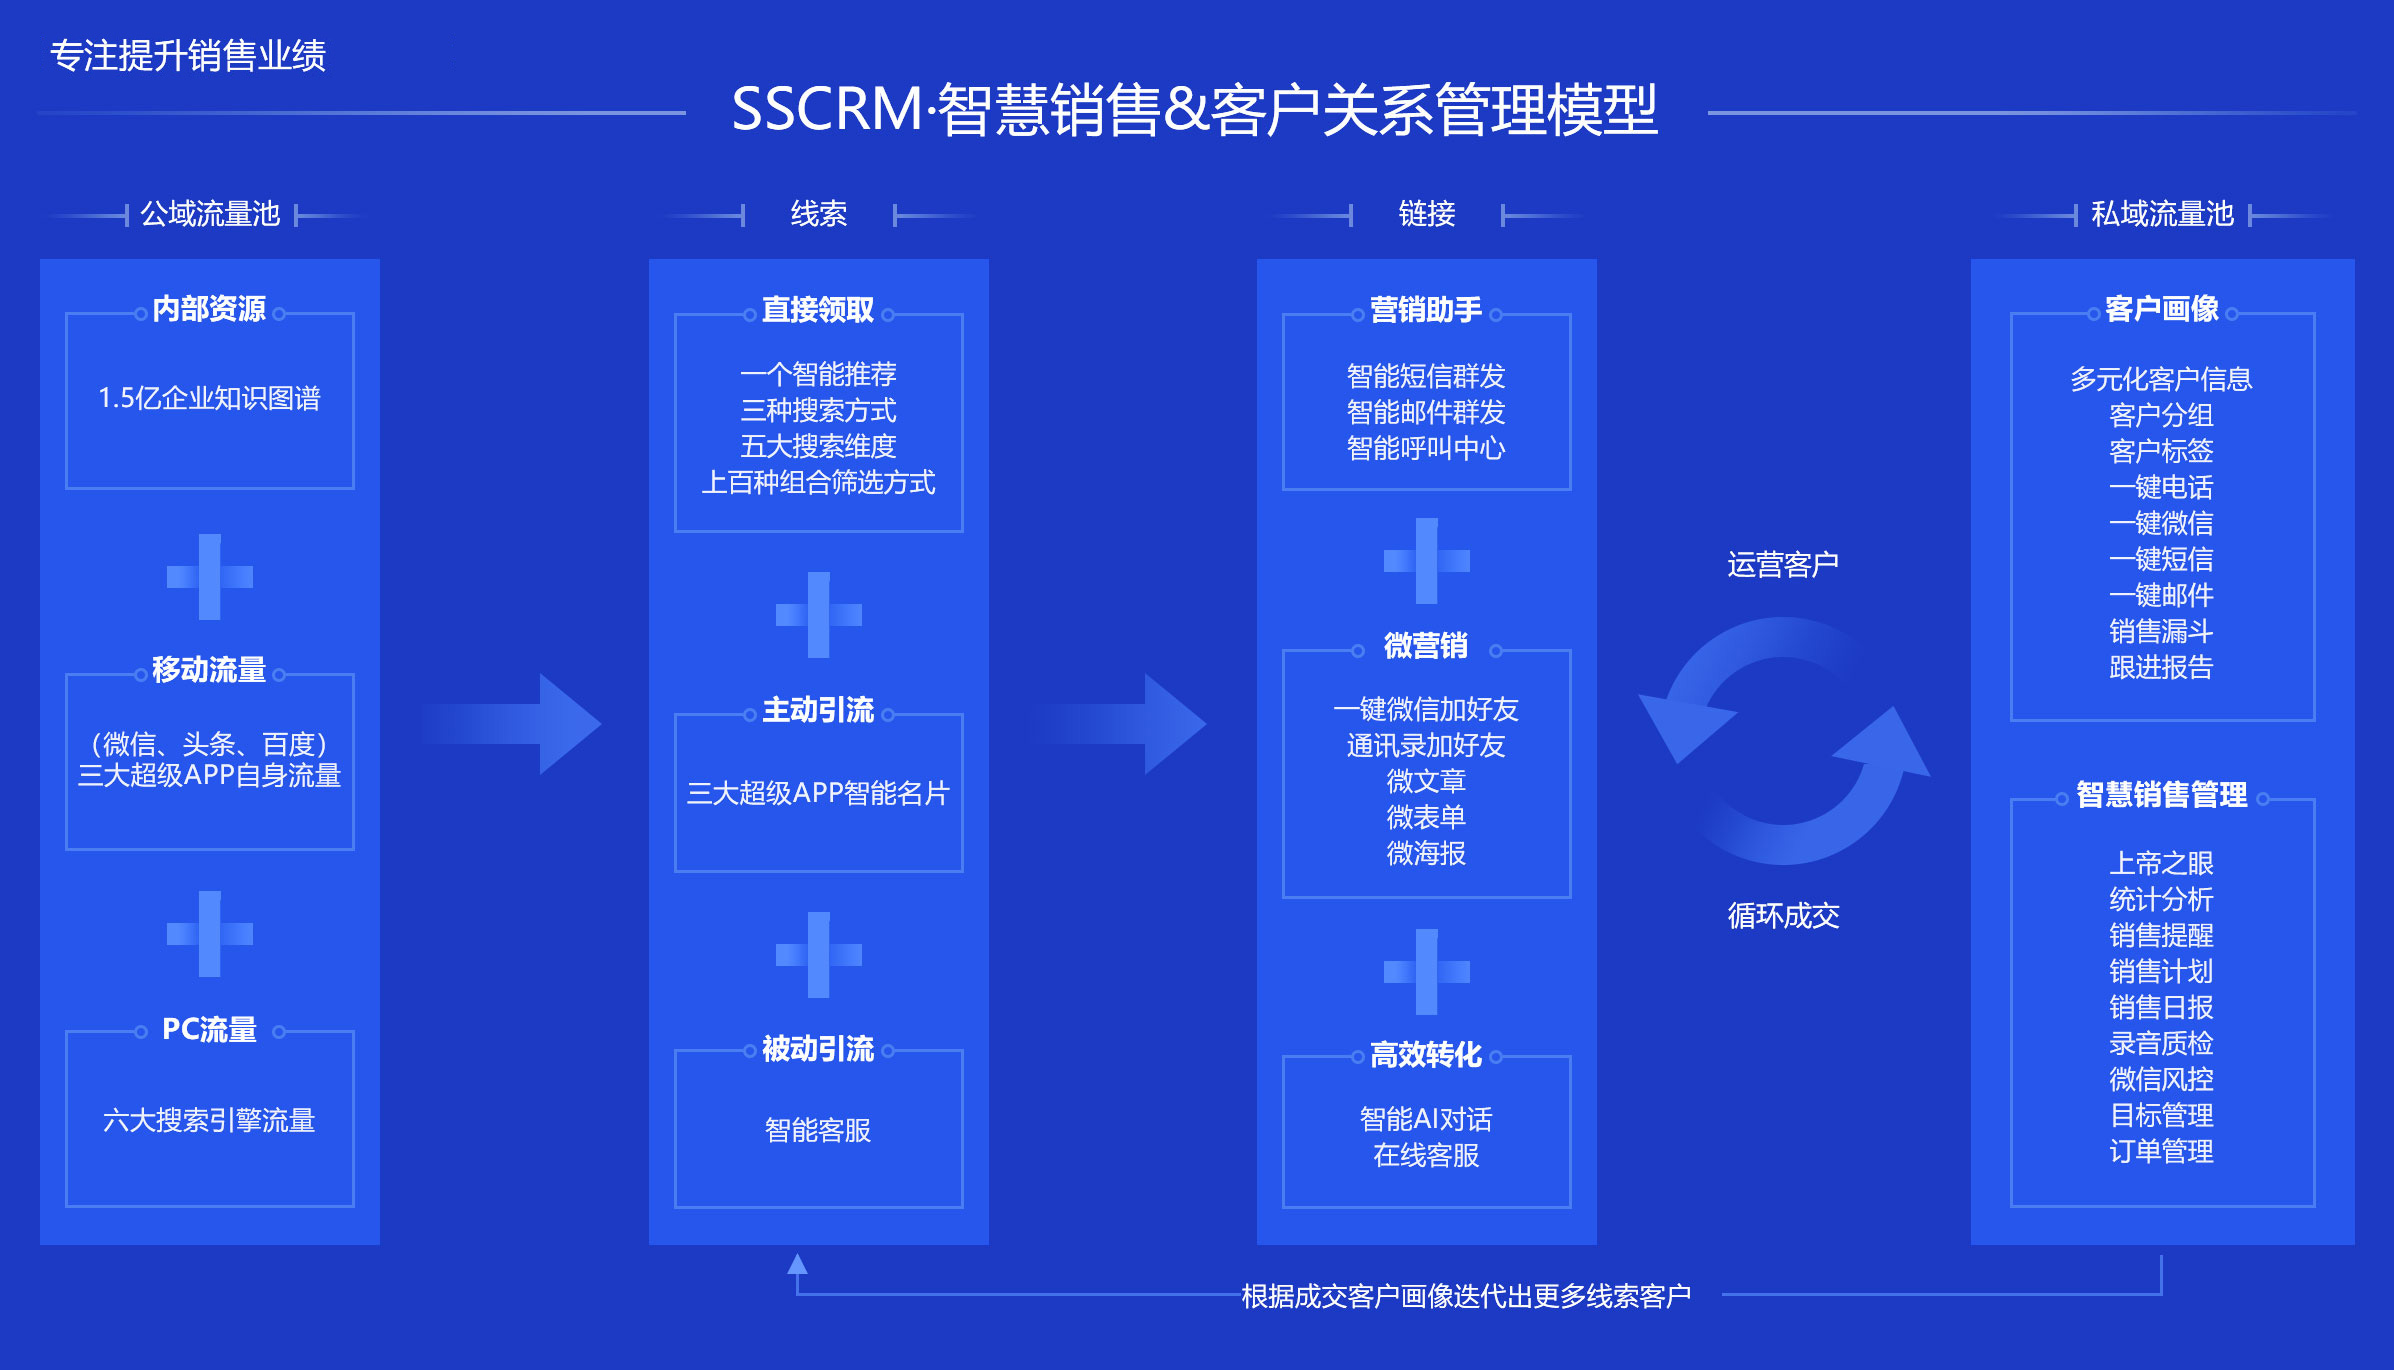 SSCRM